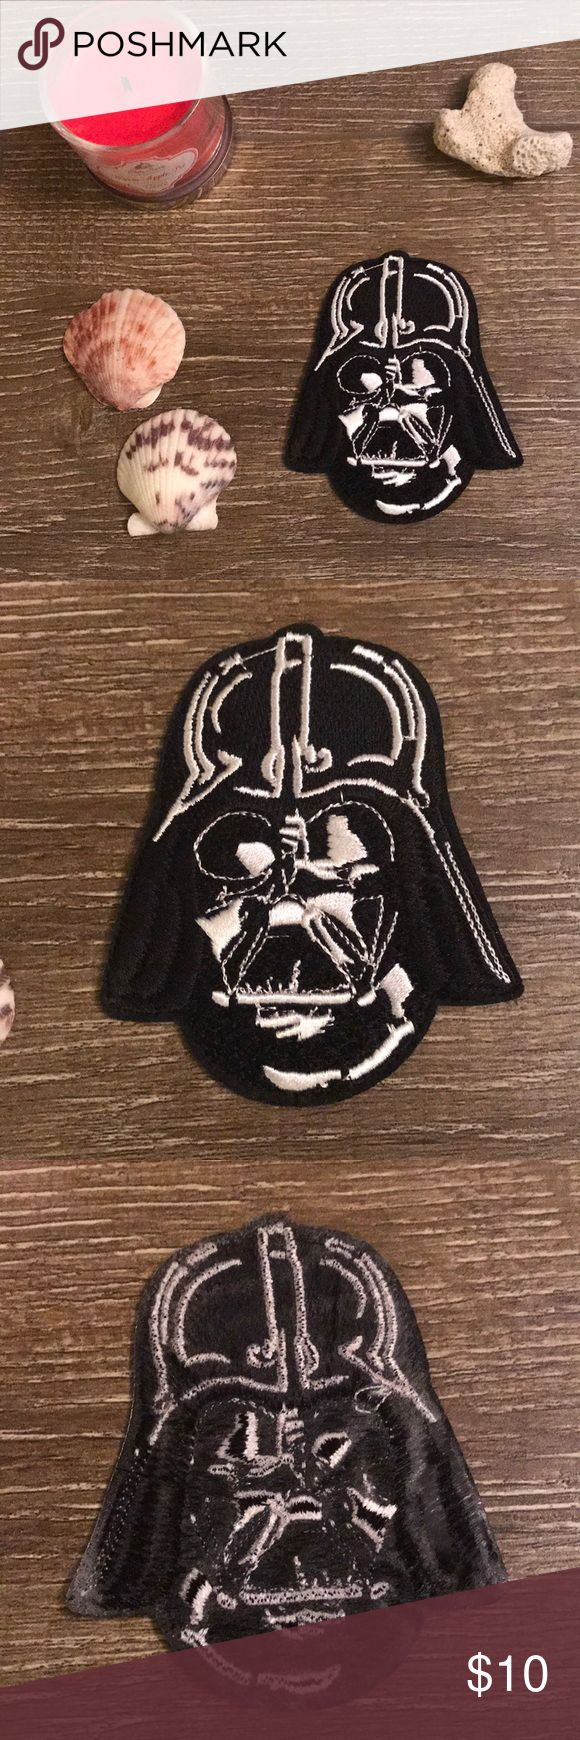 Death Vader iron on patch Brand new iron on patch!  High quality  Listing includes 1 earth Vader patch   Special edition   1 patch=$8 2 patches= $13 4 patches= $20 Accessories